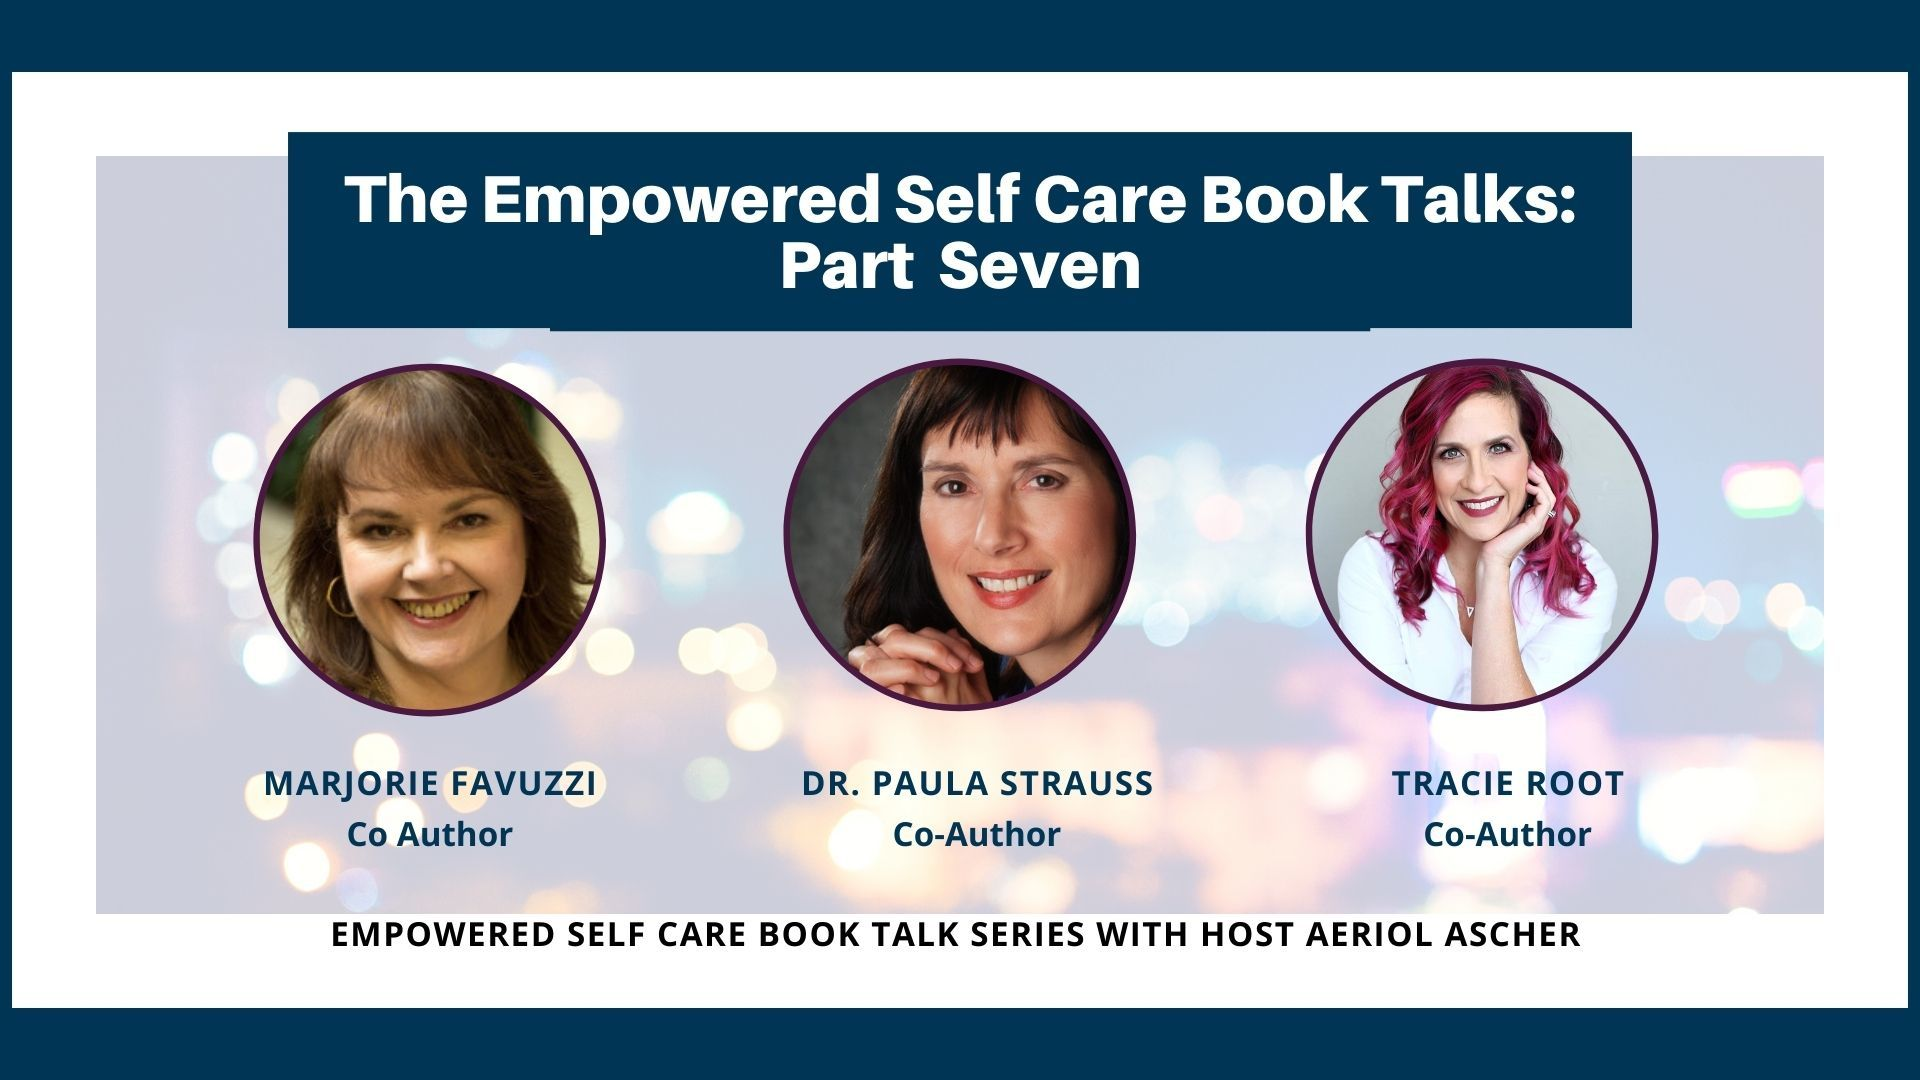 The Empowered Self Care Book Talk Series Part 7